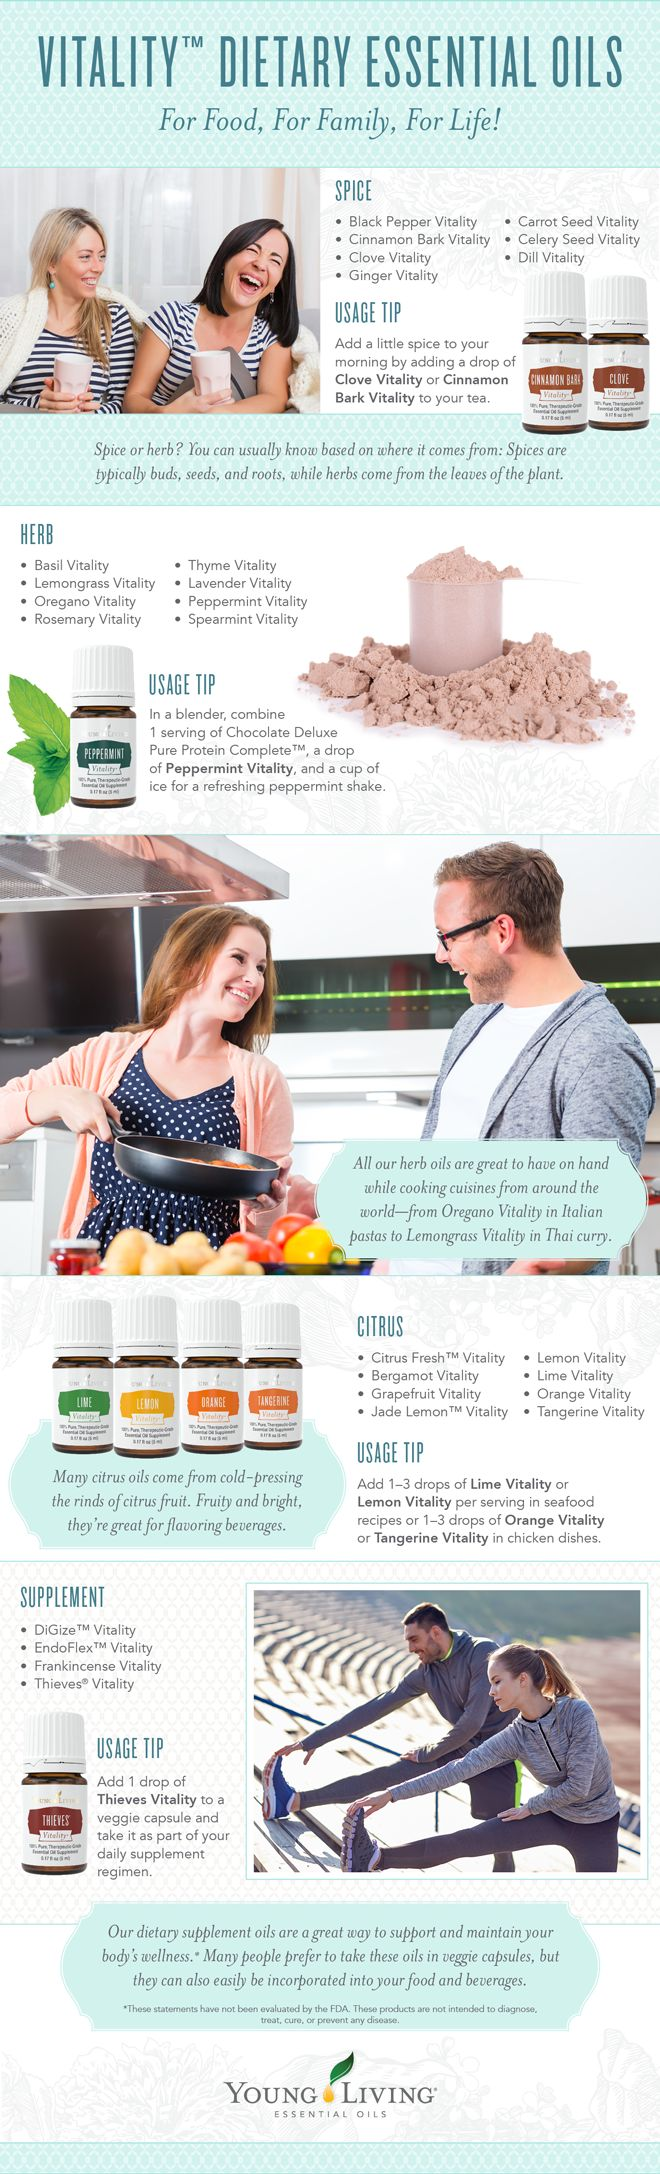 Find our best recipes for the Vitality Line of Young Living Essential Oils from RecipeswithEssentialOils.com